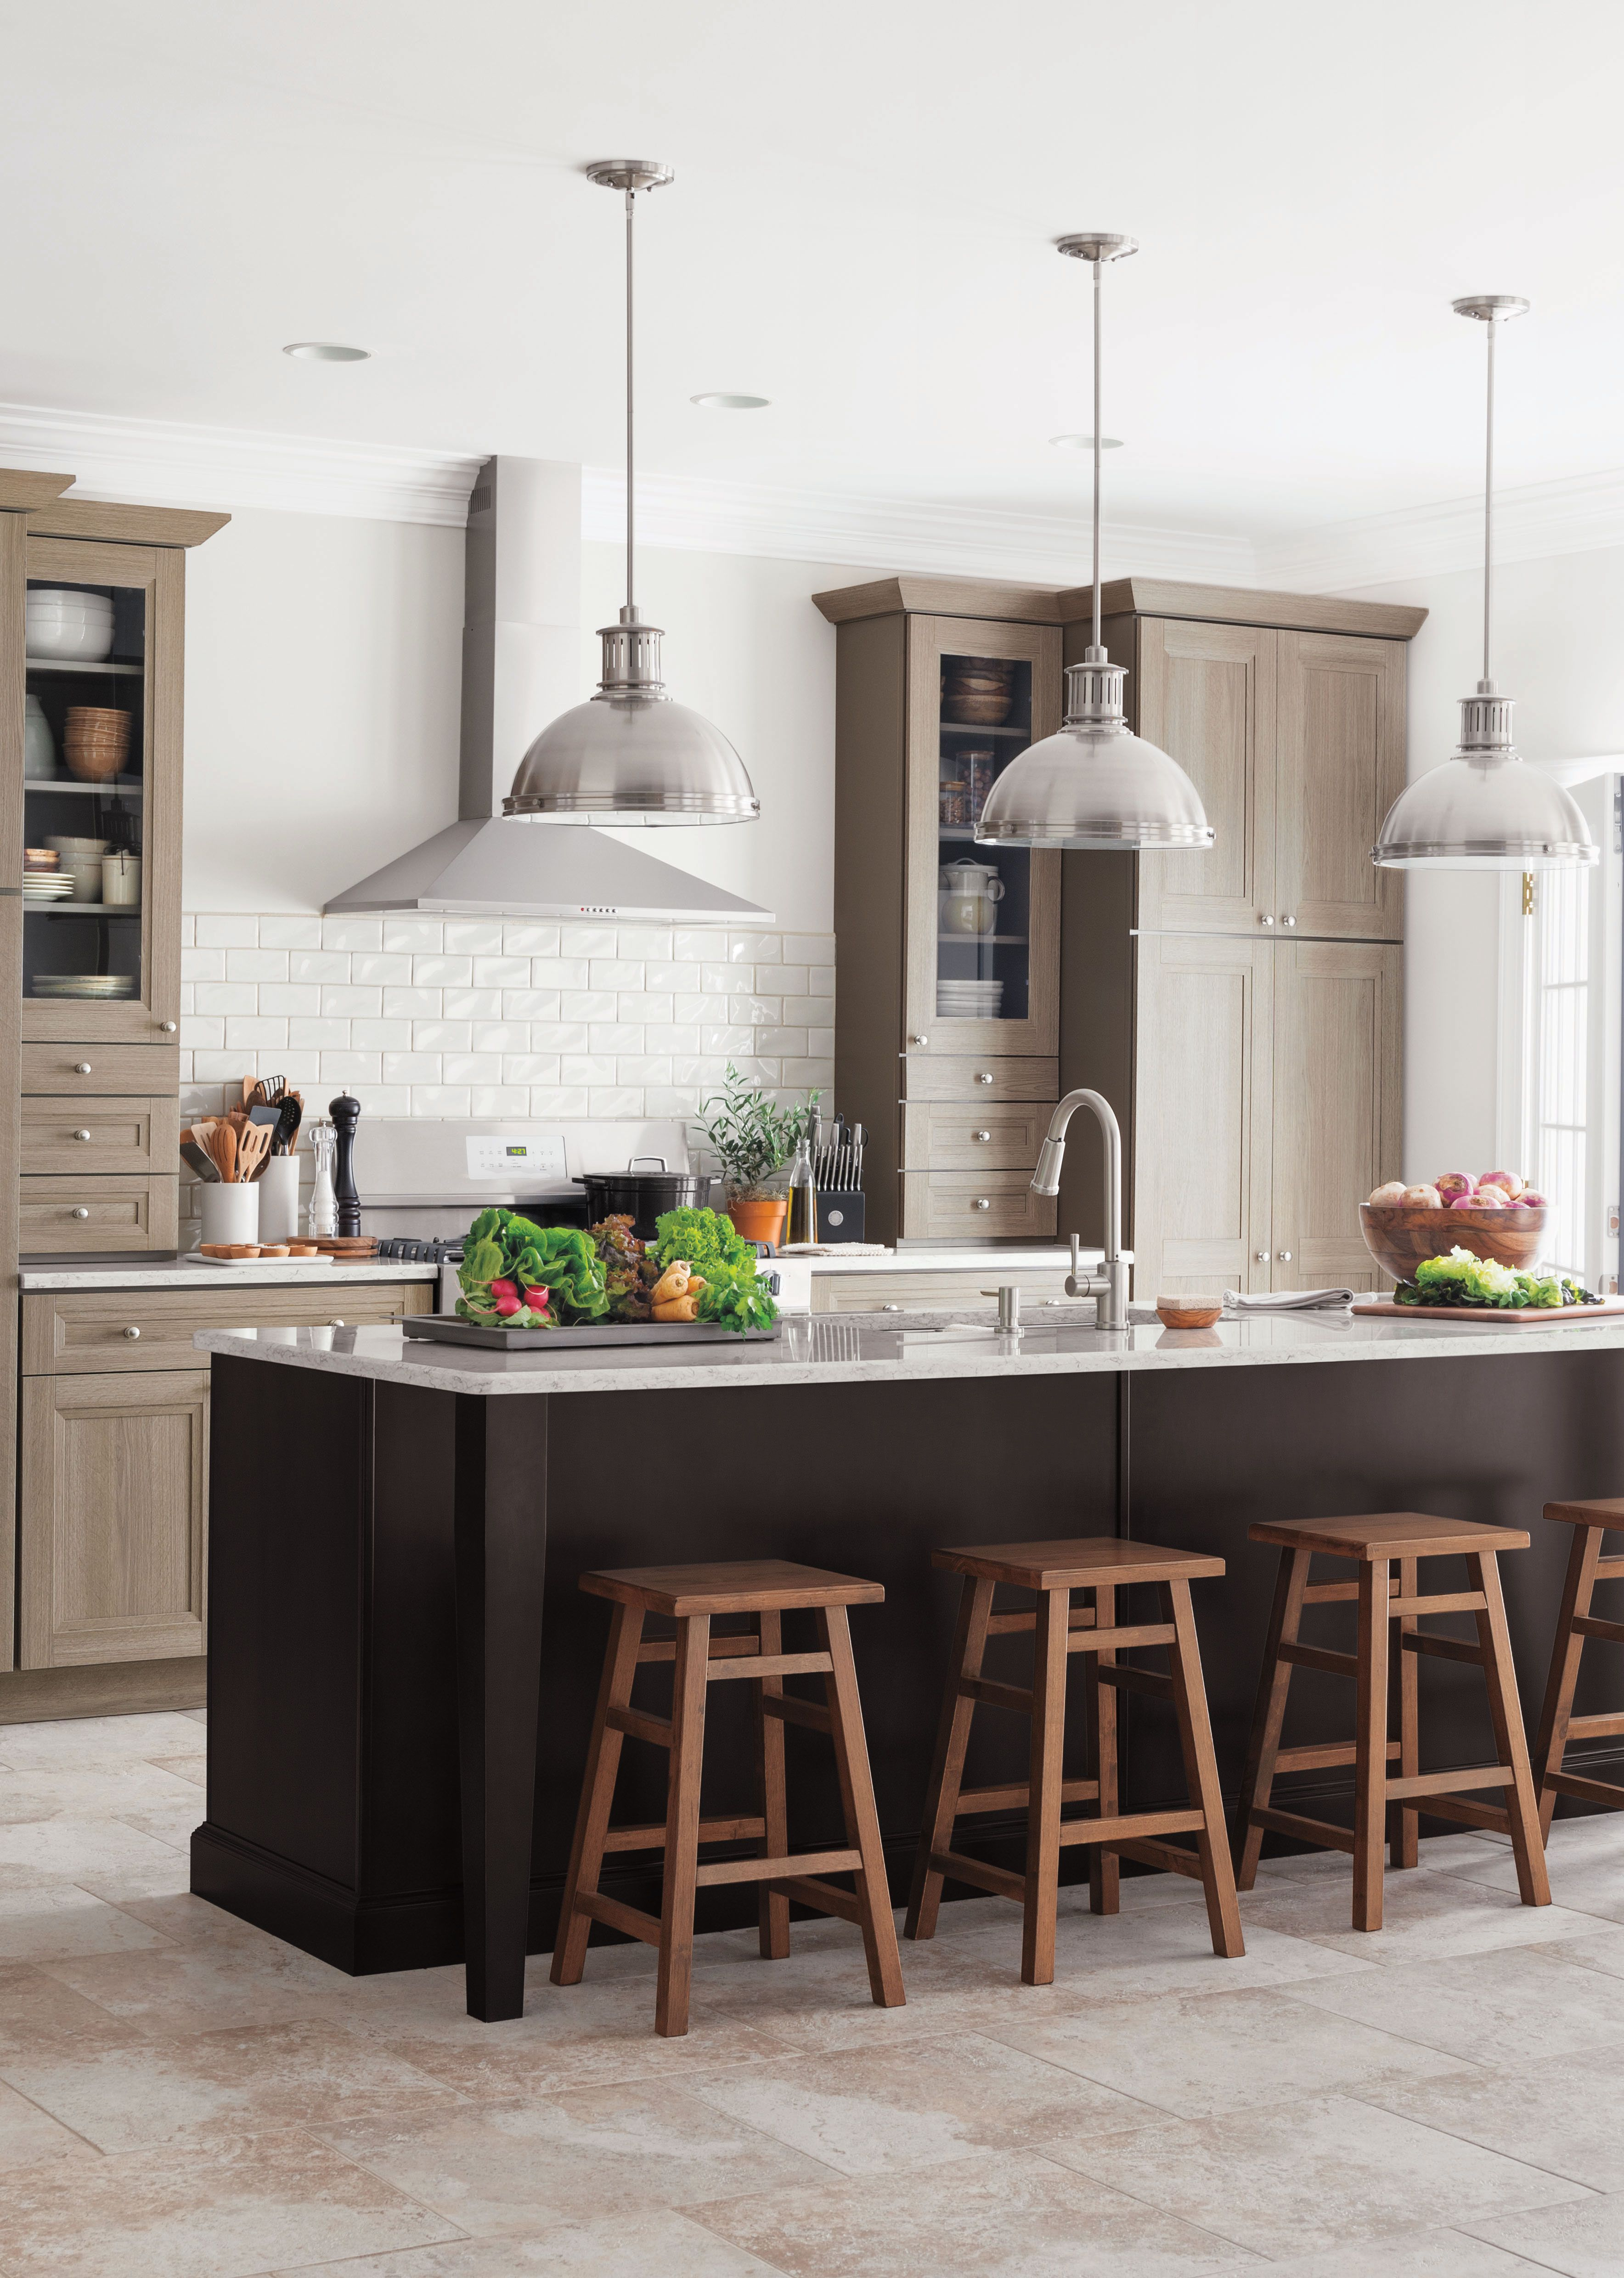 Living Kitchens At The Home Depot